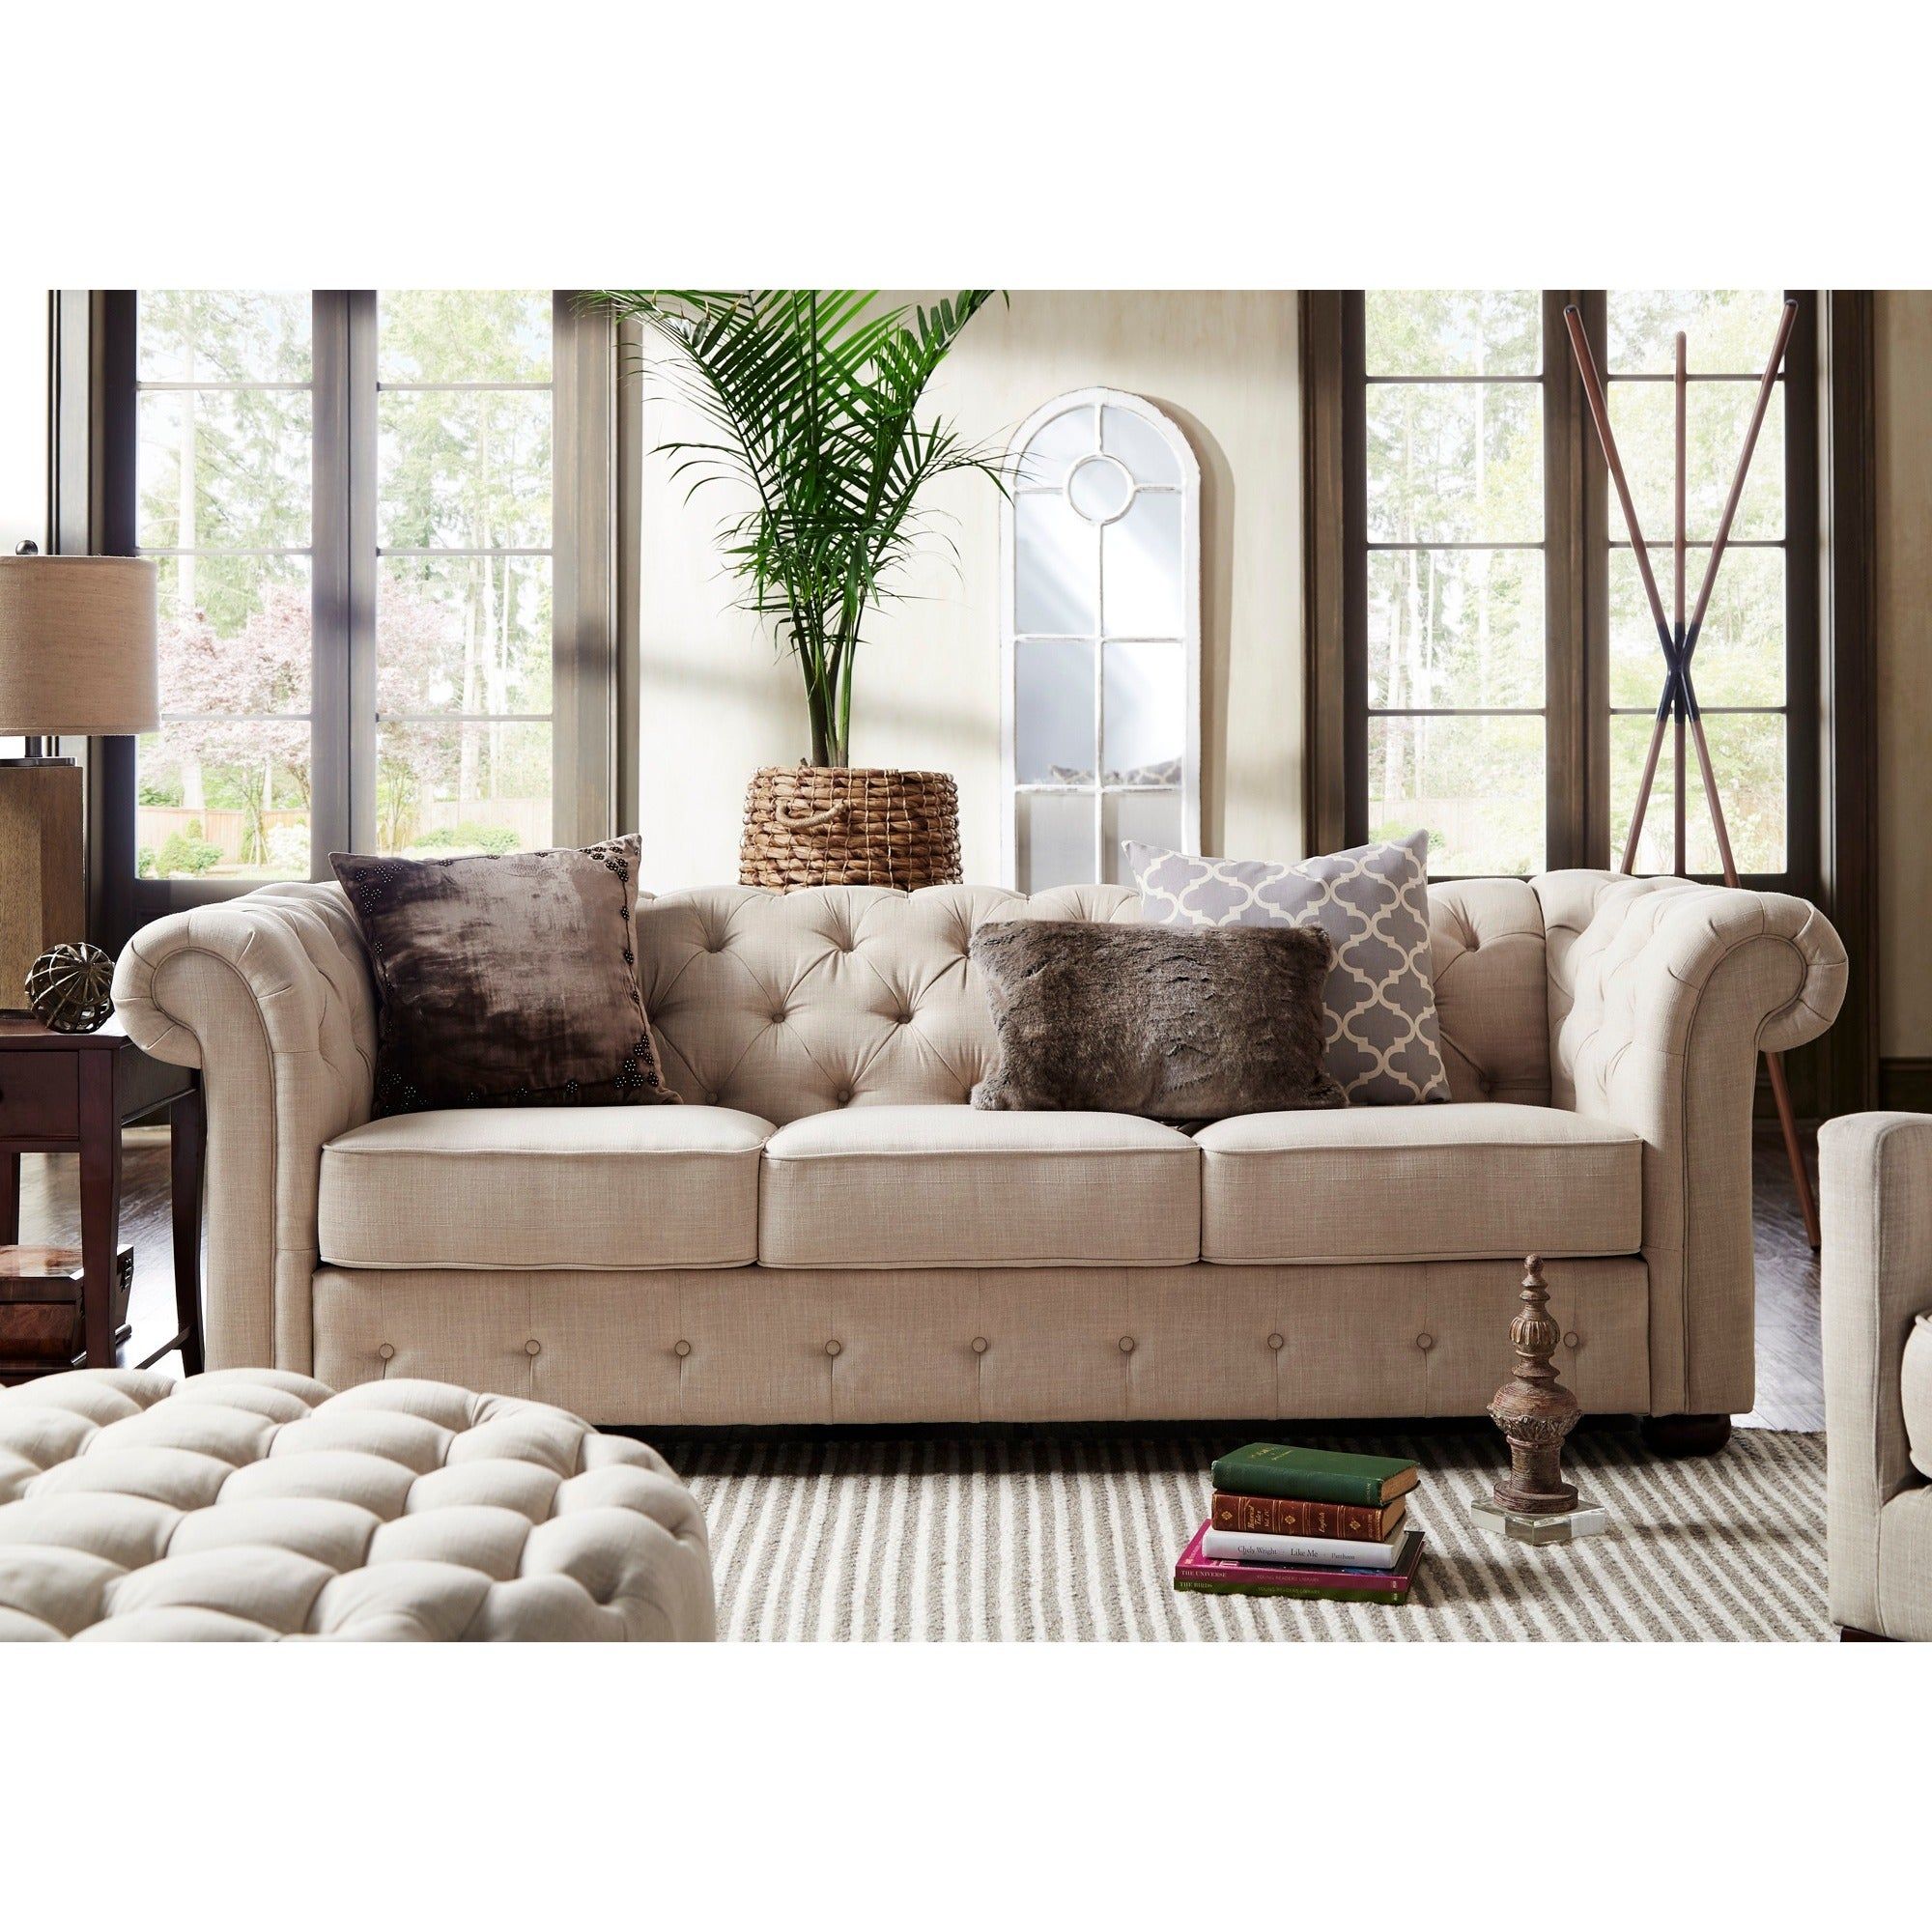 Prime Knightsbridge Beige Fabric Button Tufted Chesterfield Sofa And Seating By Inspire Q Artisan Creativecarmelina Interior Chair Design Creativecarmelinacom